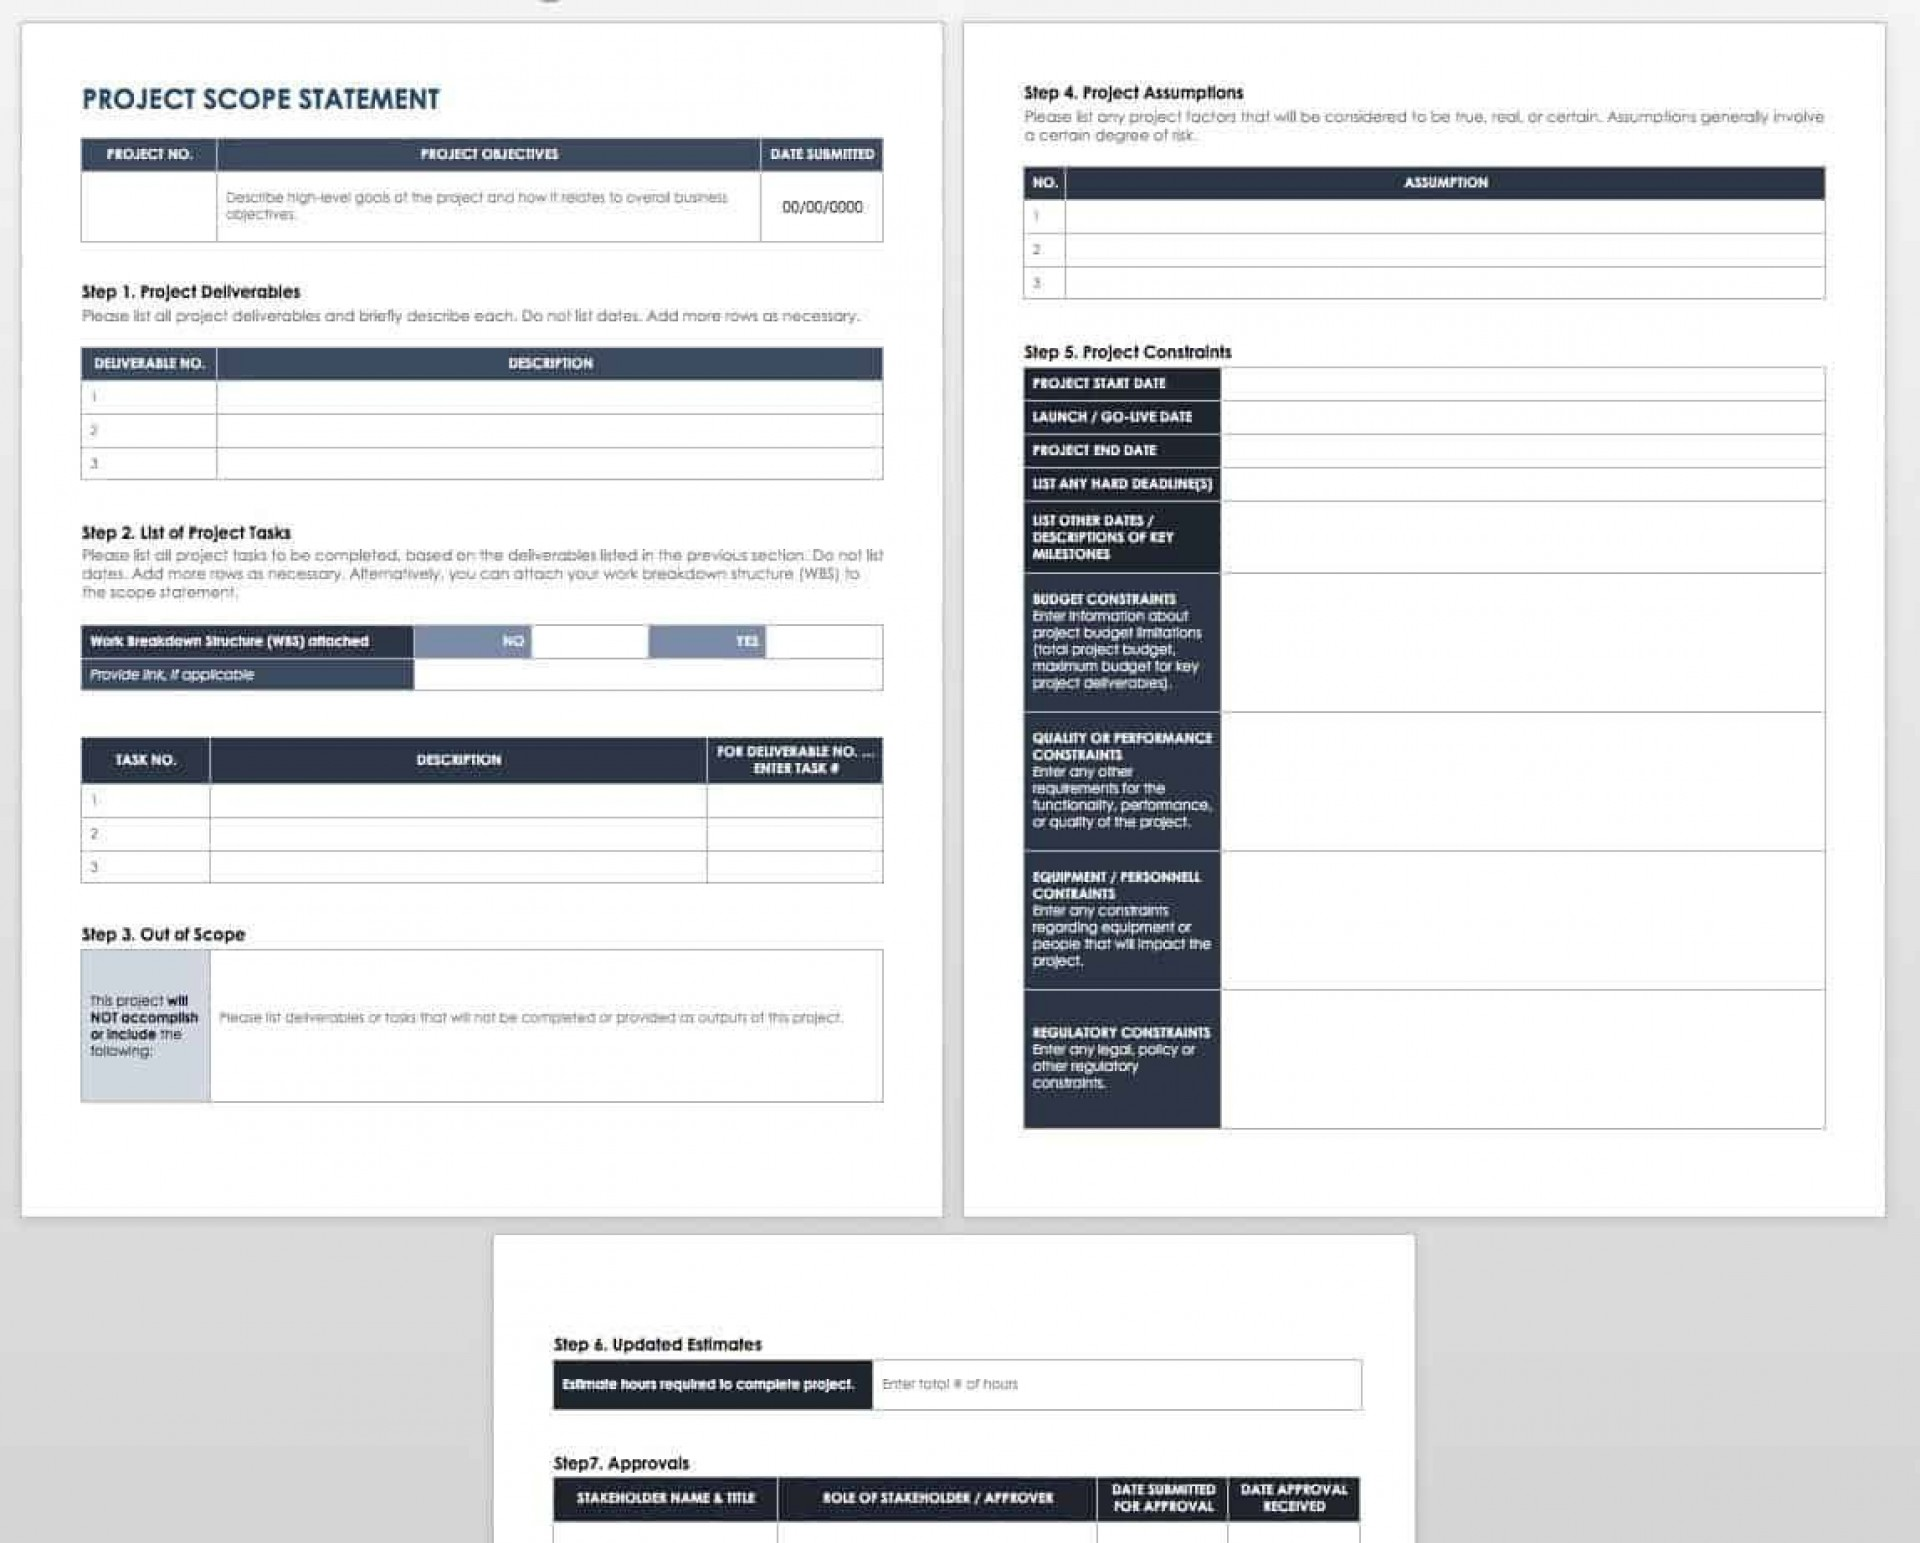 005 Outstanding Project Statement Of Work Template Doc High Def 1920